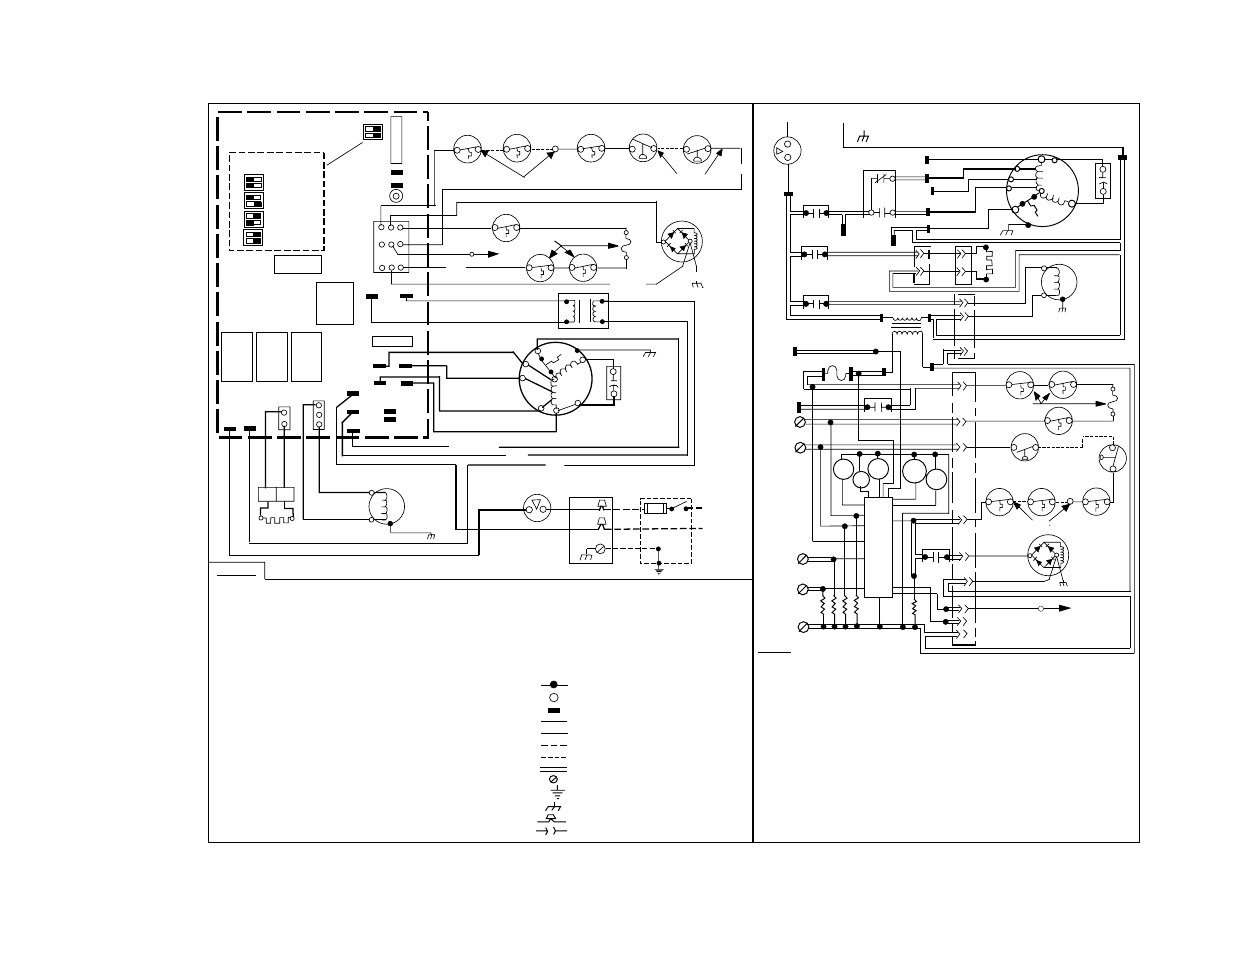 Bryant Humidifier Wiring Diagram on Heat Pump Thermostat Wiring Diagrams